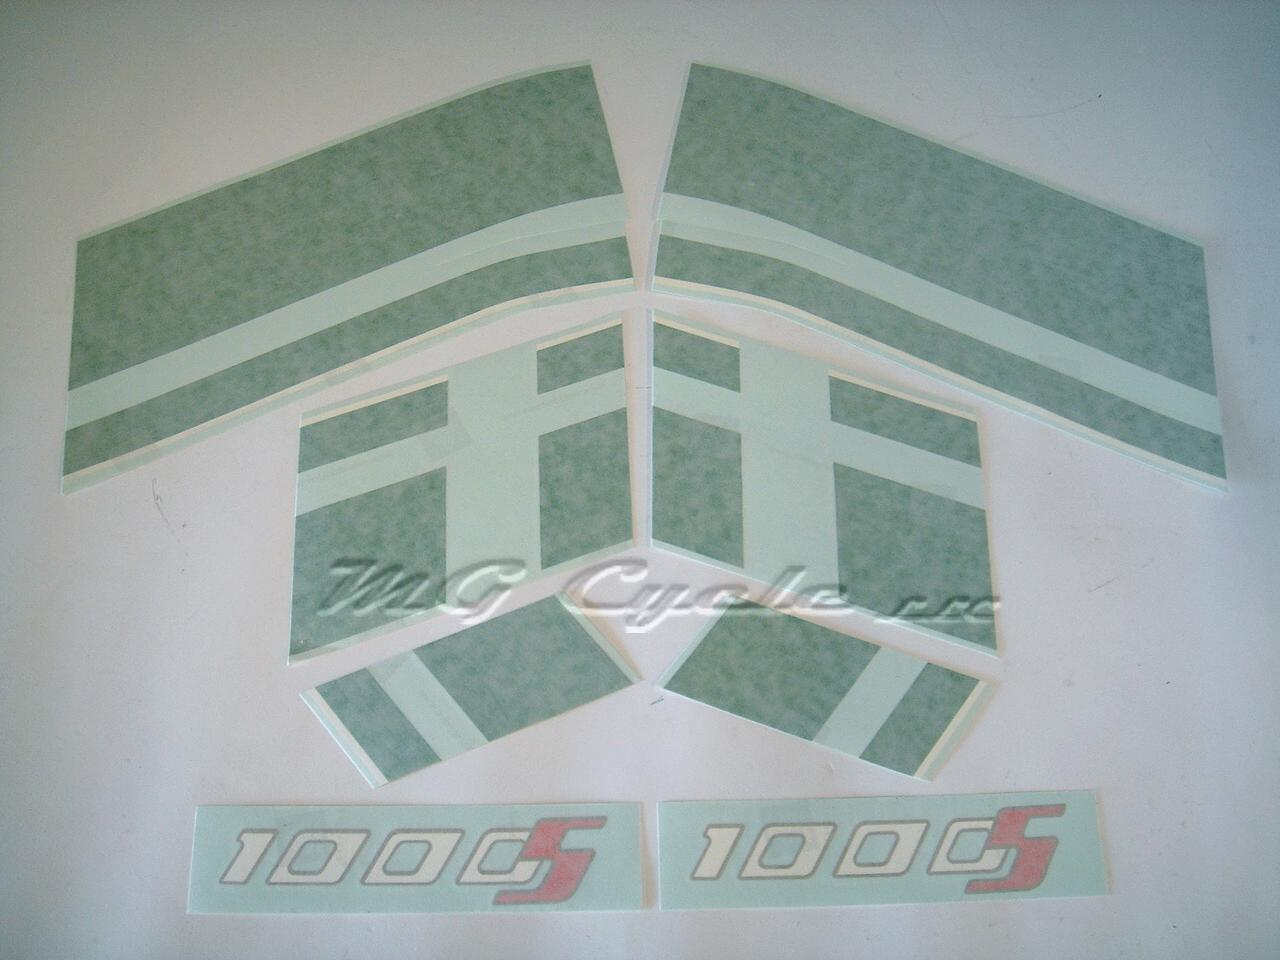 Decal set 1000S, green